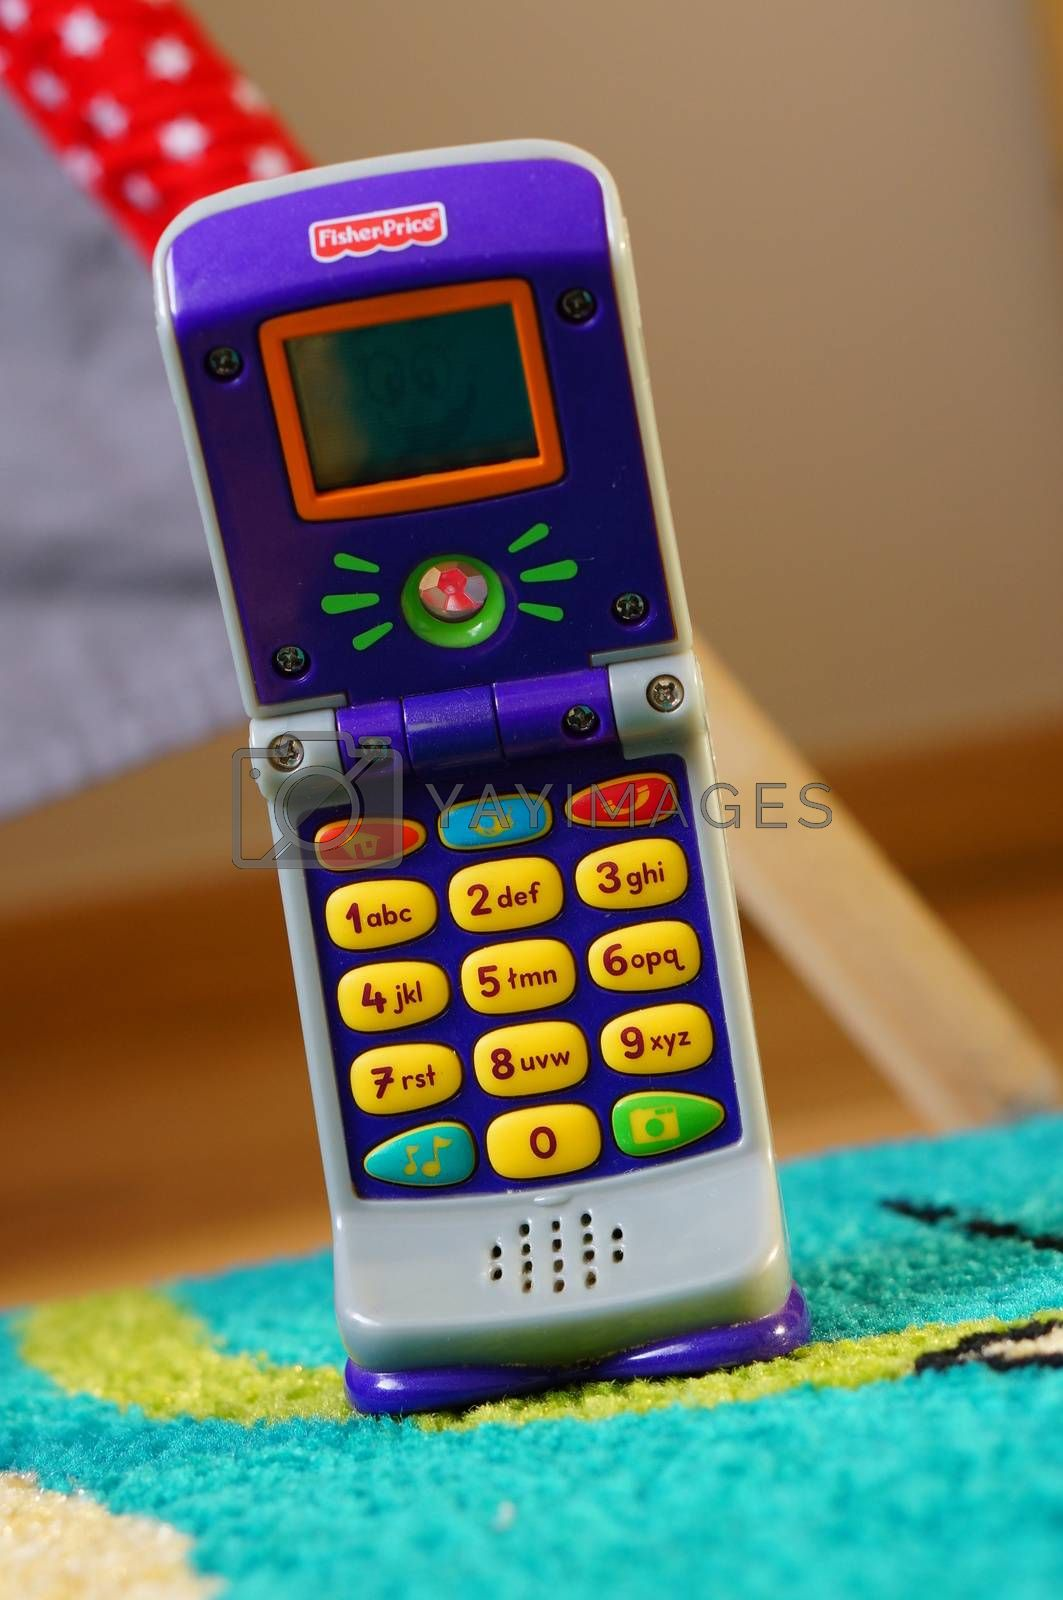 POZNAN, POLAND - AUGUST 20, 2015: Fisher Price plastic toy phone